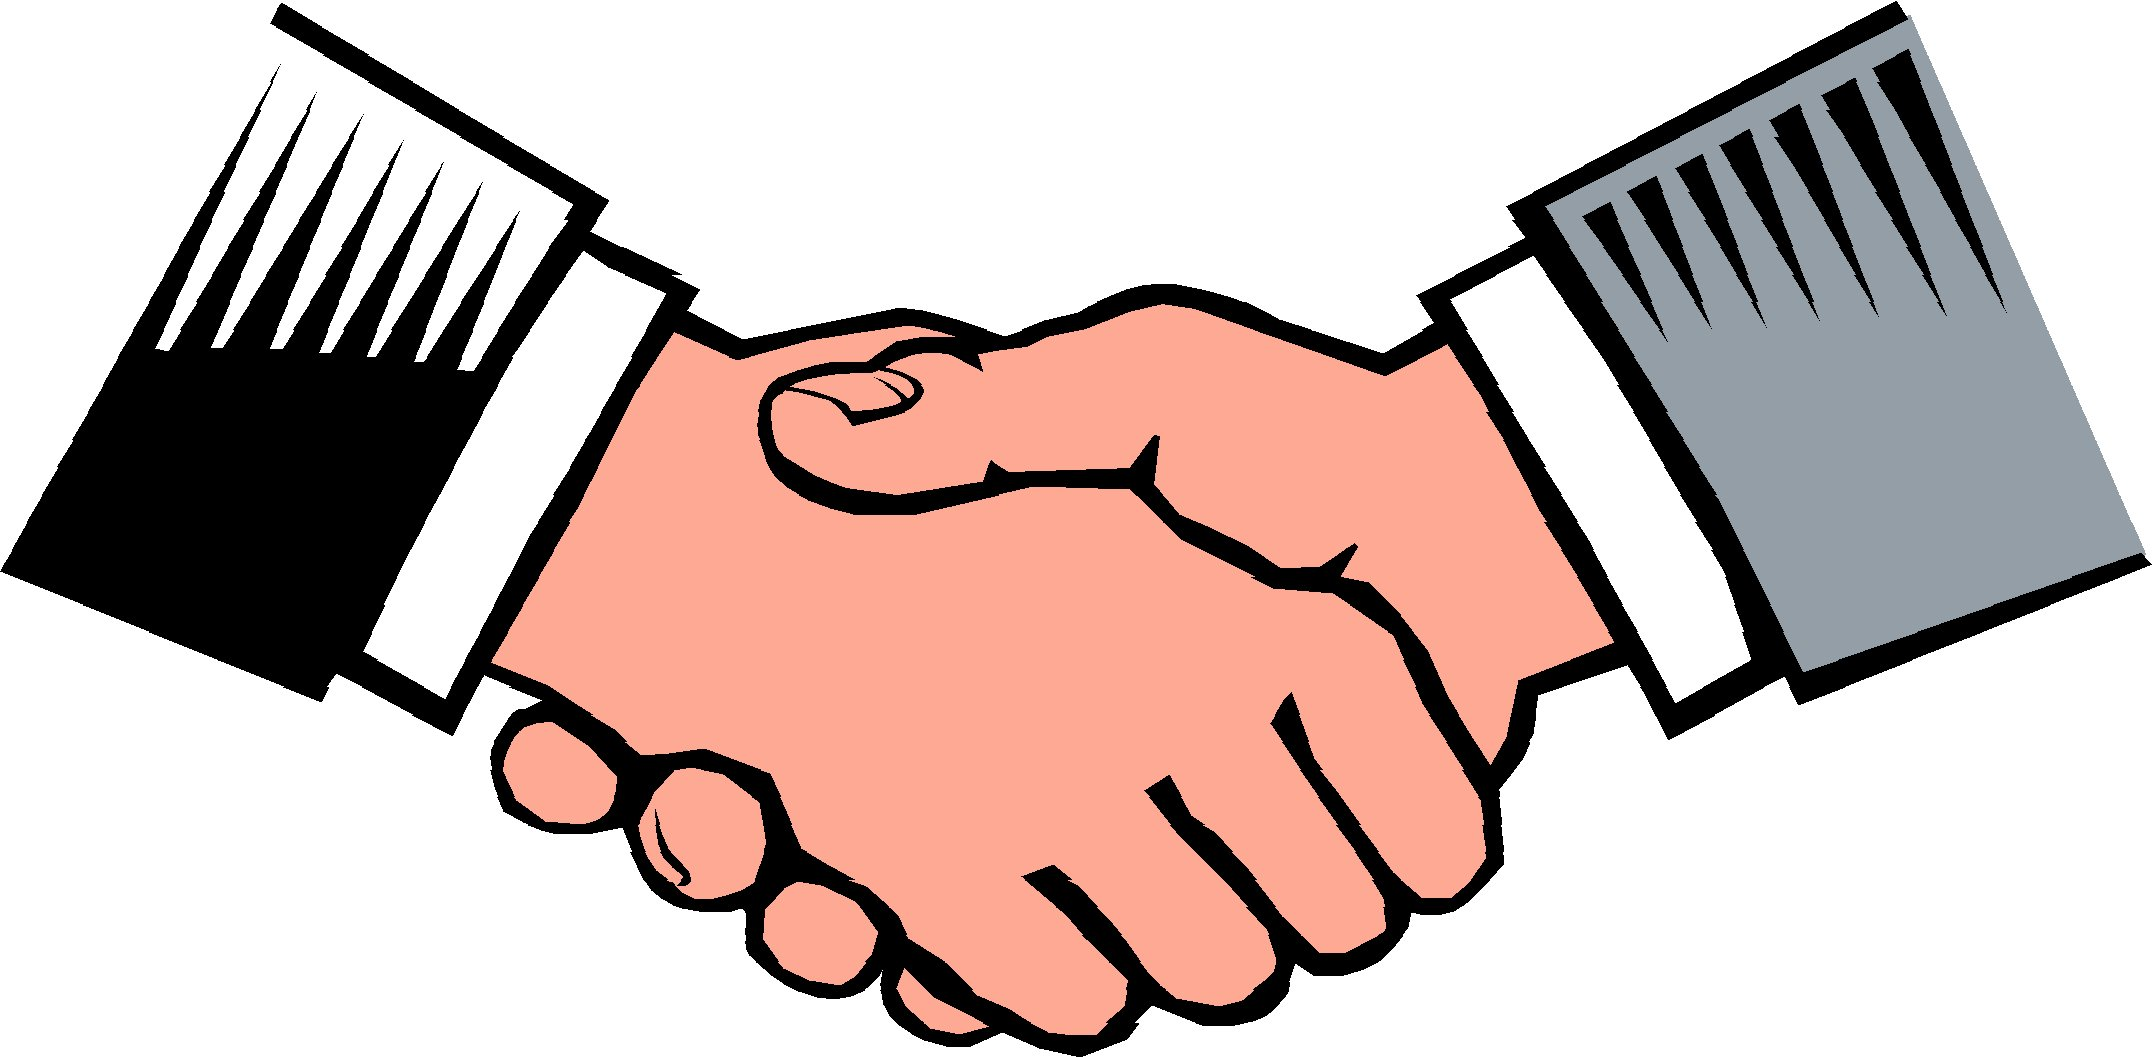 Shaking Hands Clip Art Free